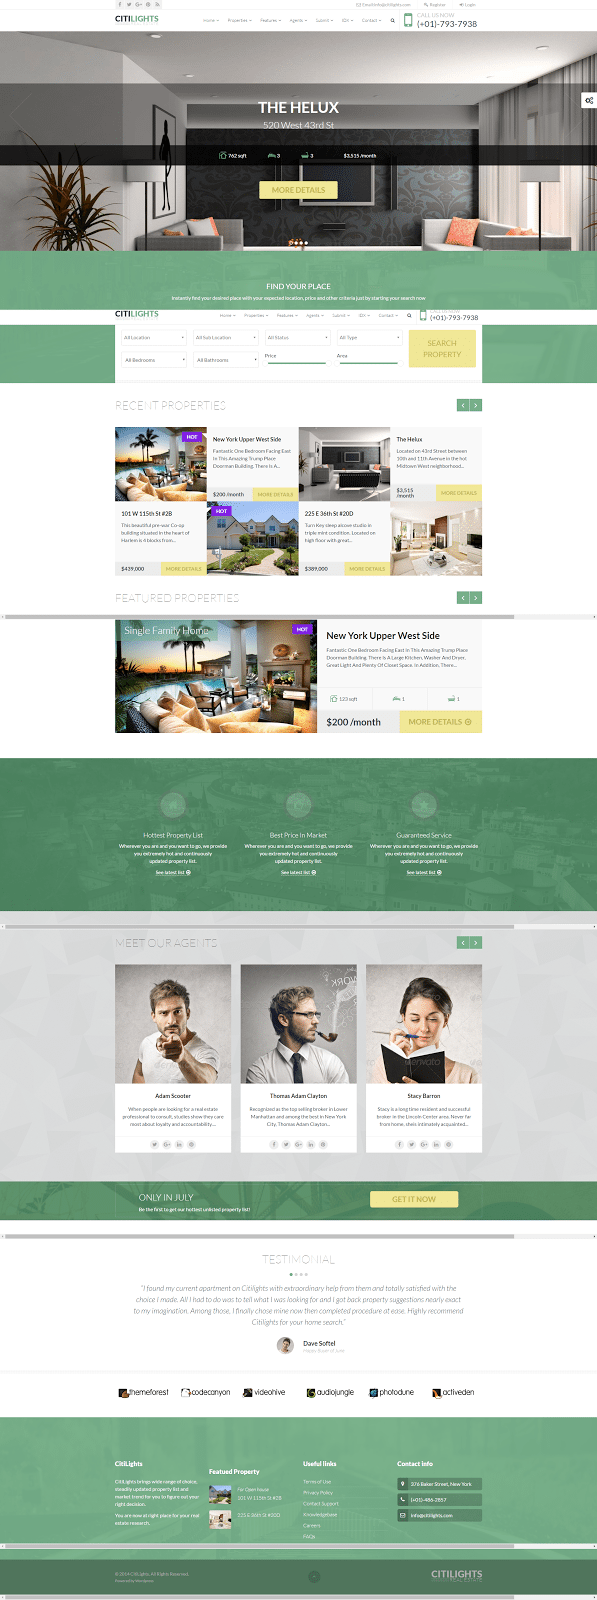 CitiLights - real estate website templates